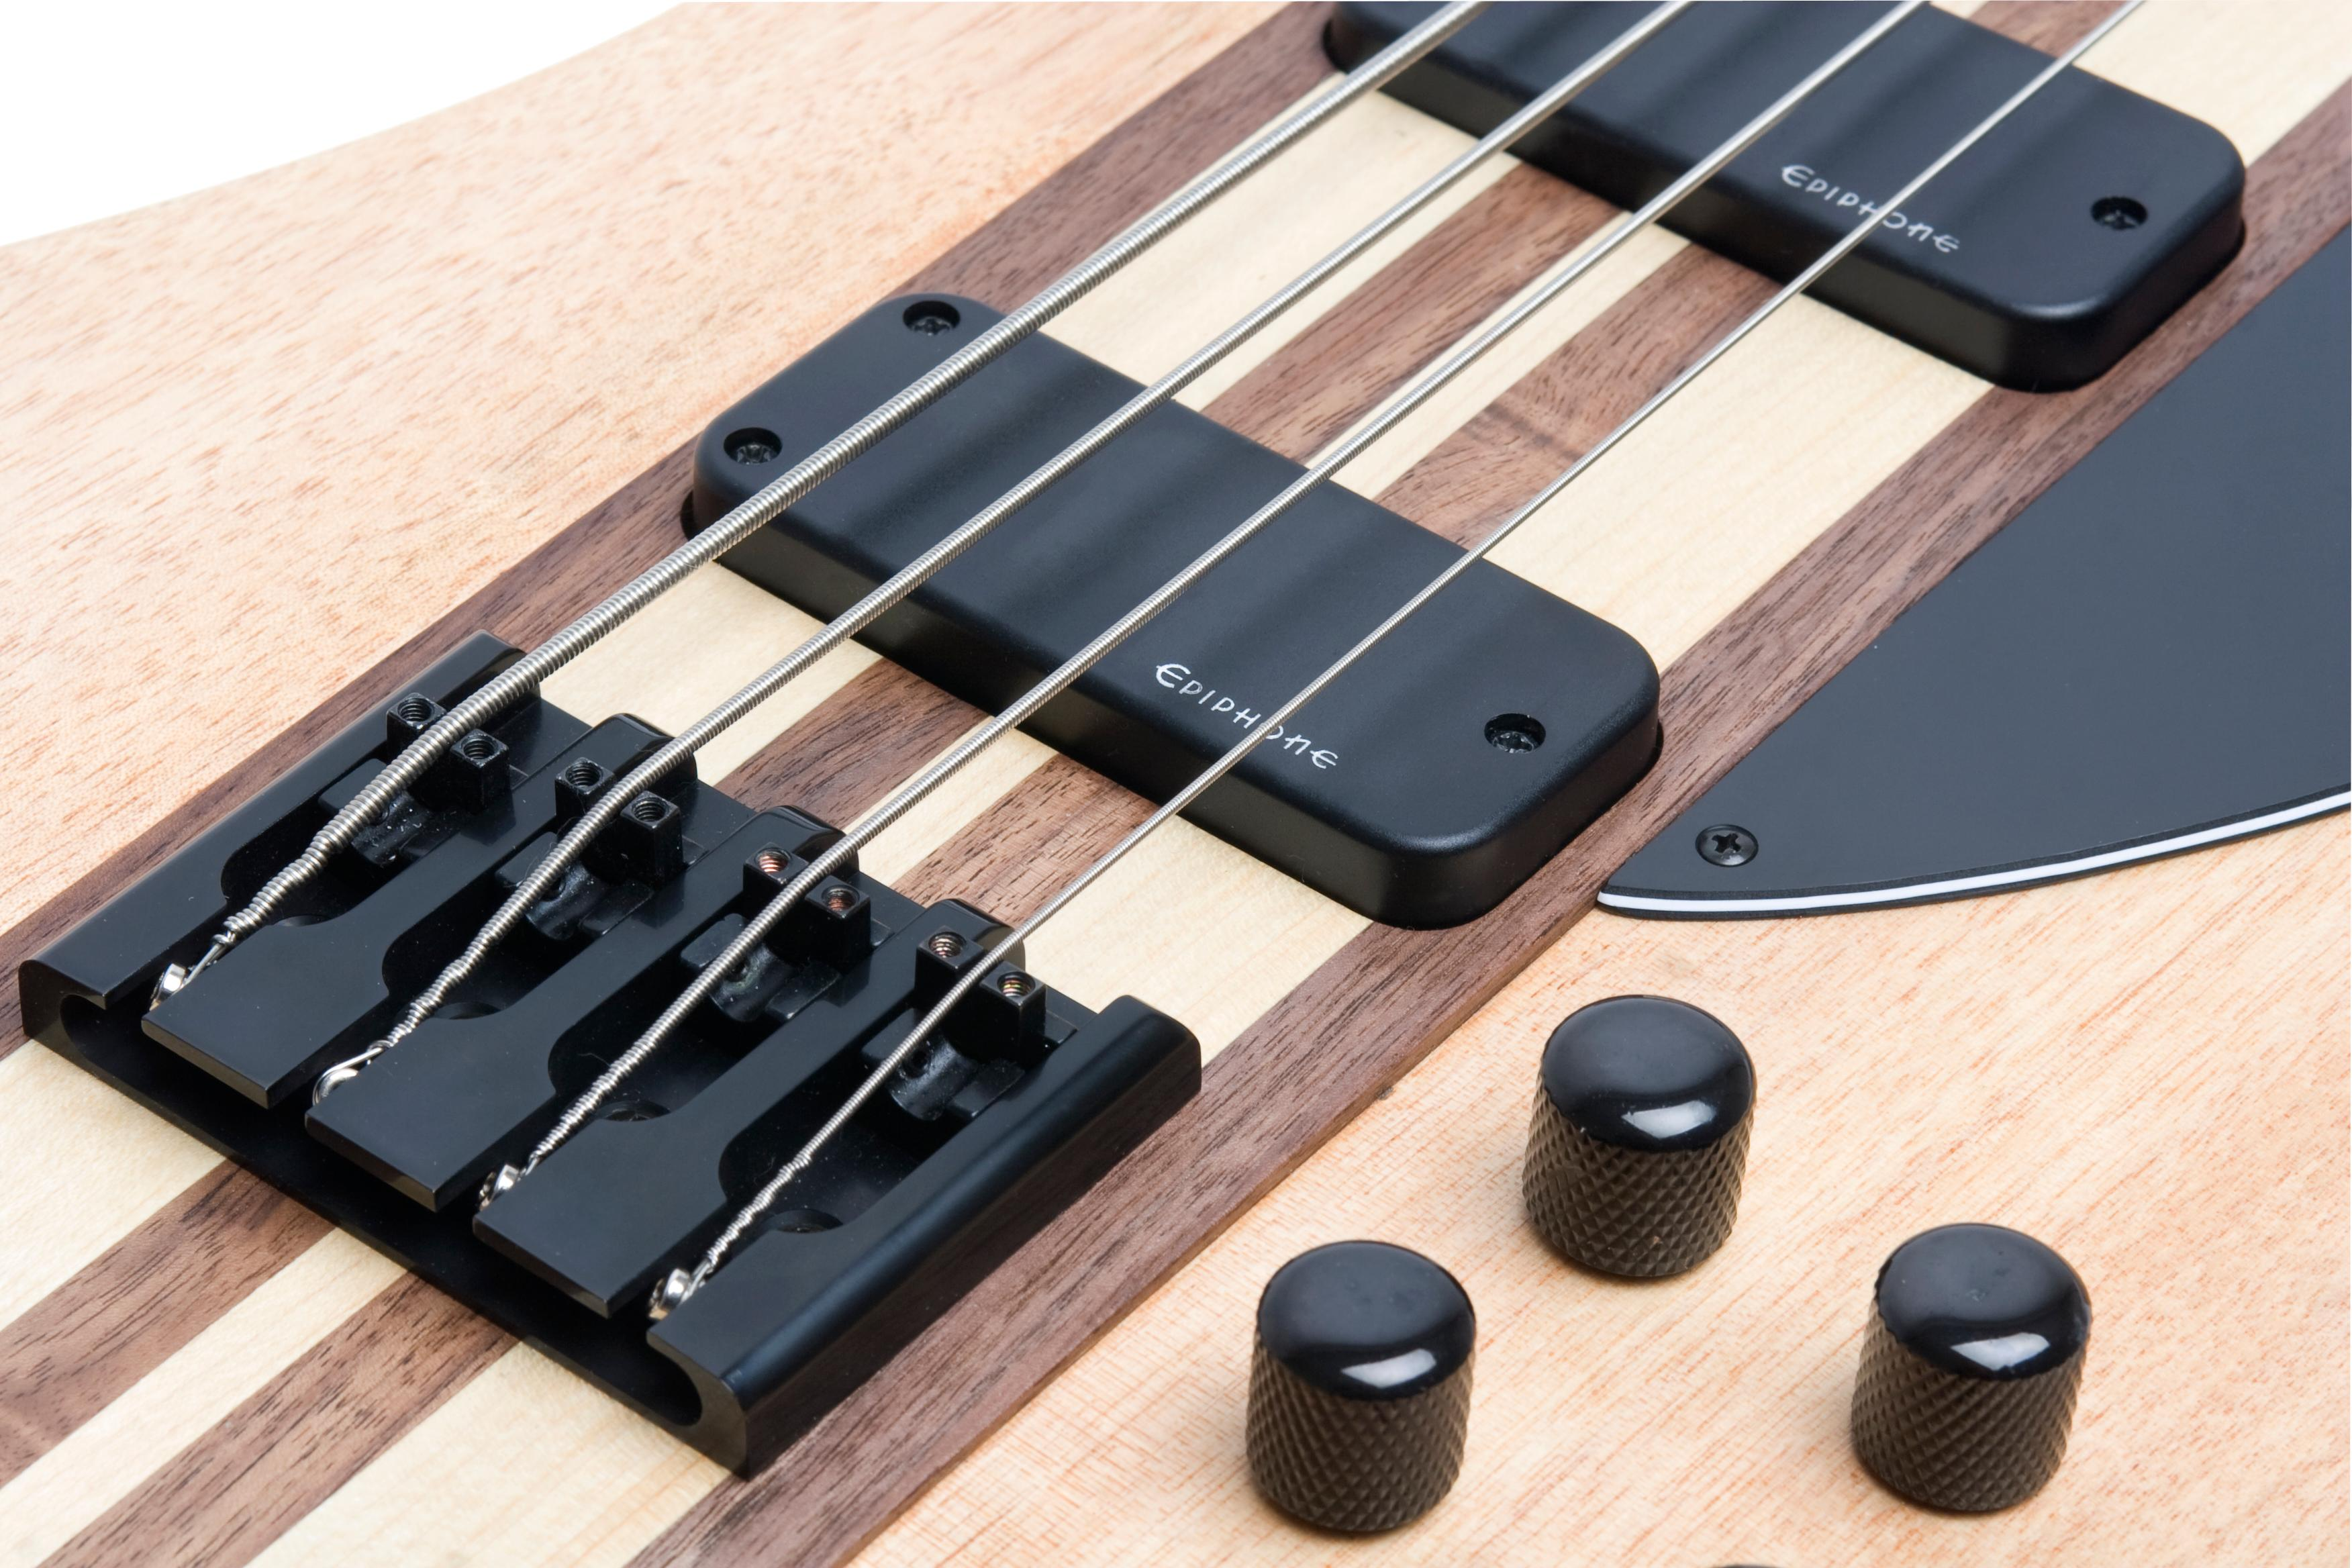 epiphone thunderbird pro iv 4 string electric bass guitar natural oiled finish. Black Bedroom Furniture Sets. Home Design Ideas